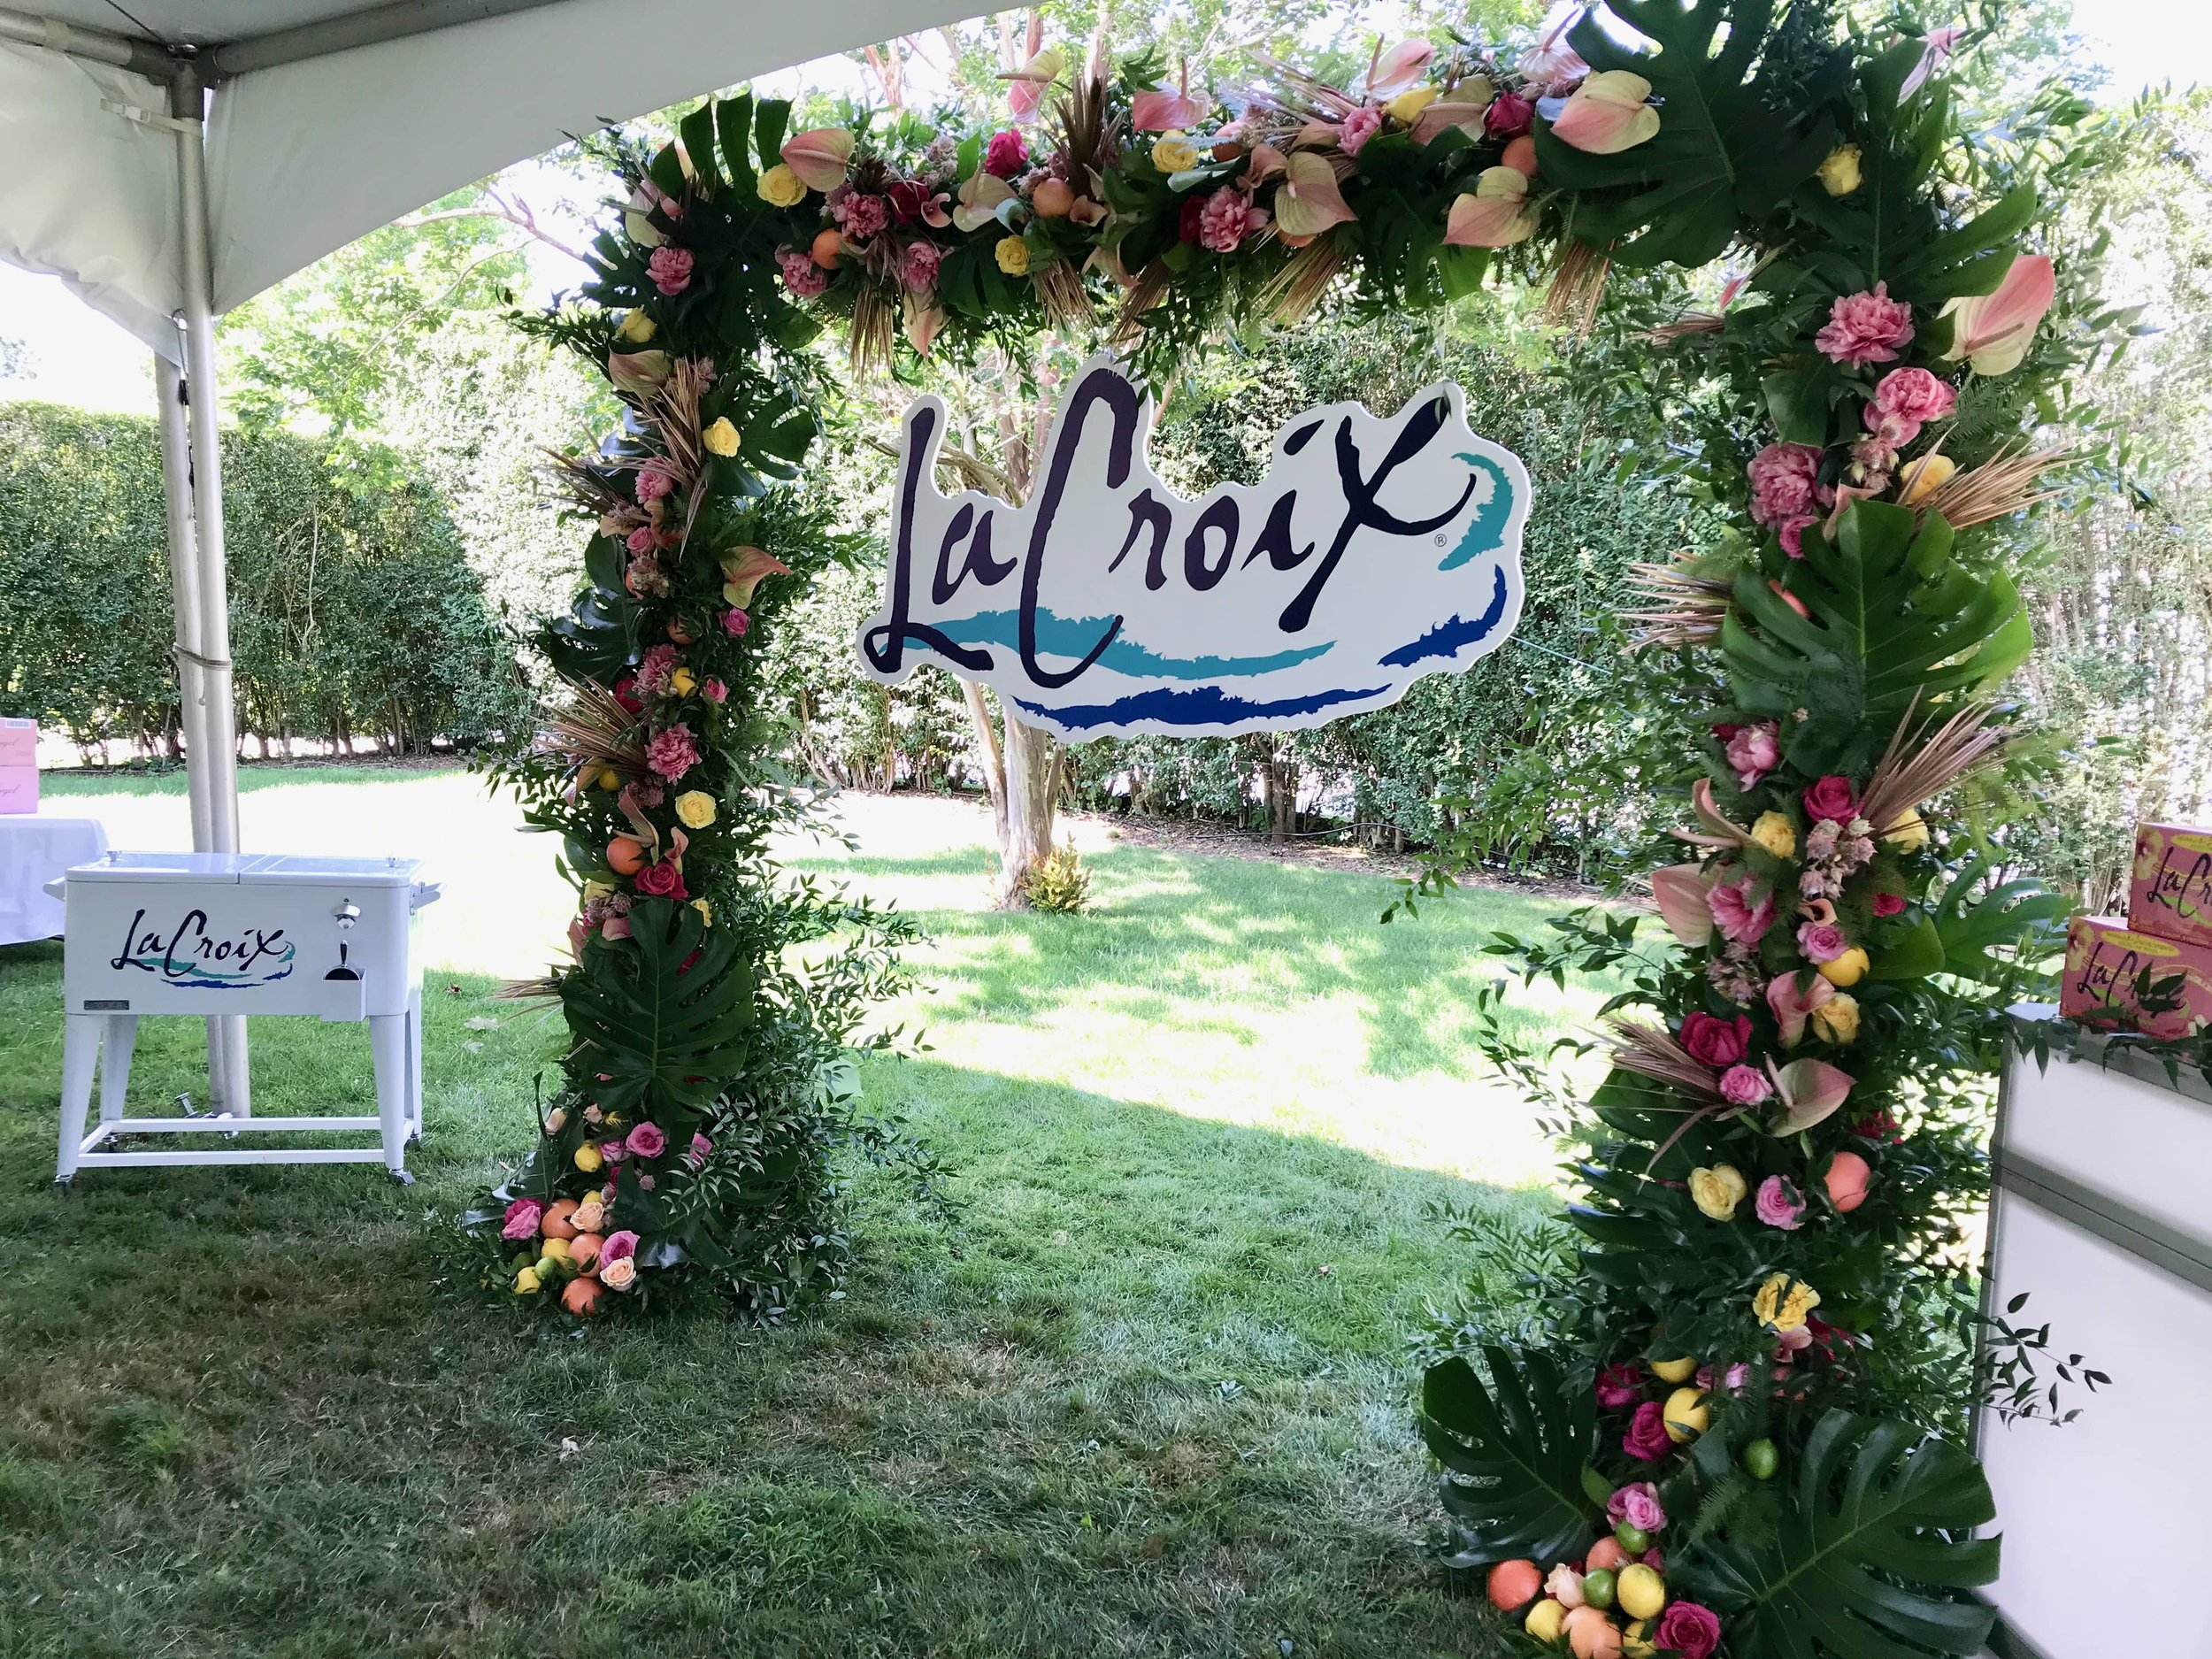 LaCroix Water Branded Arch